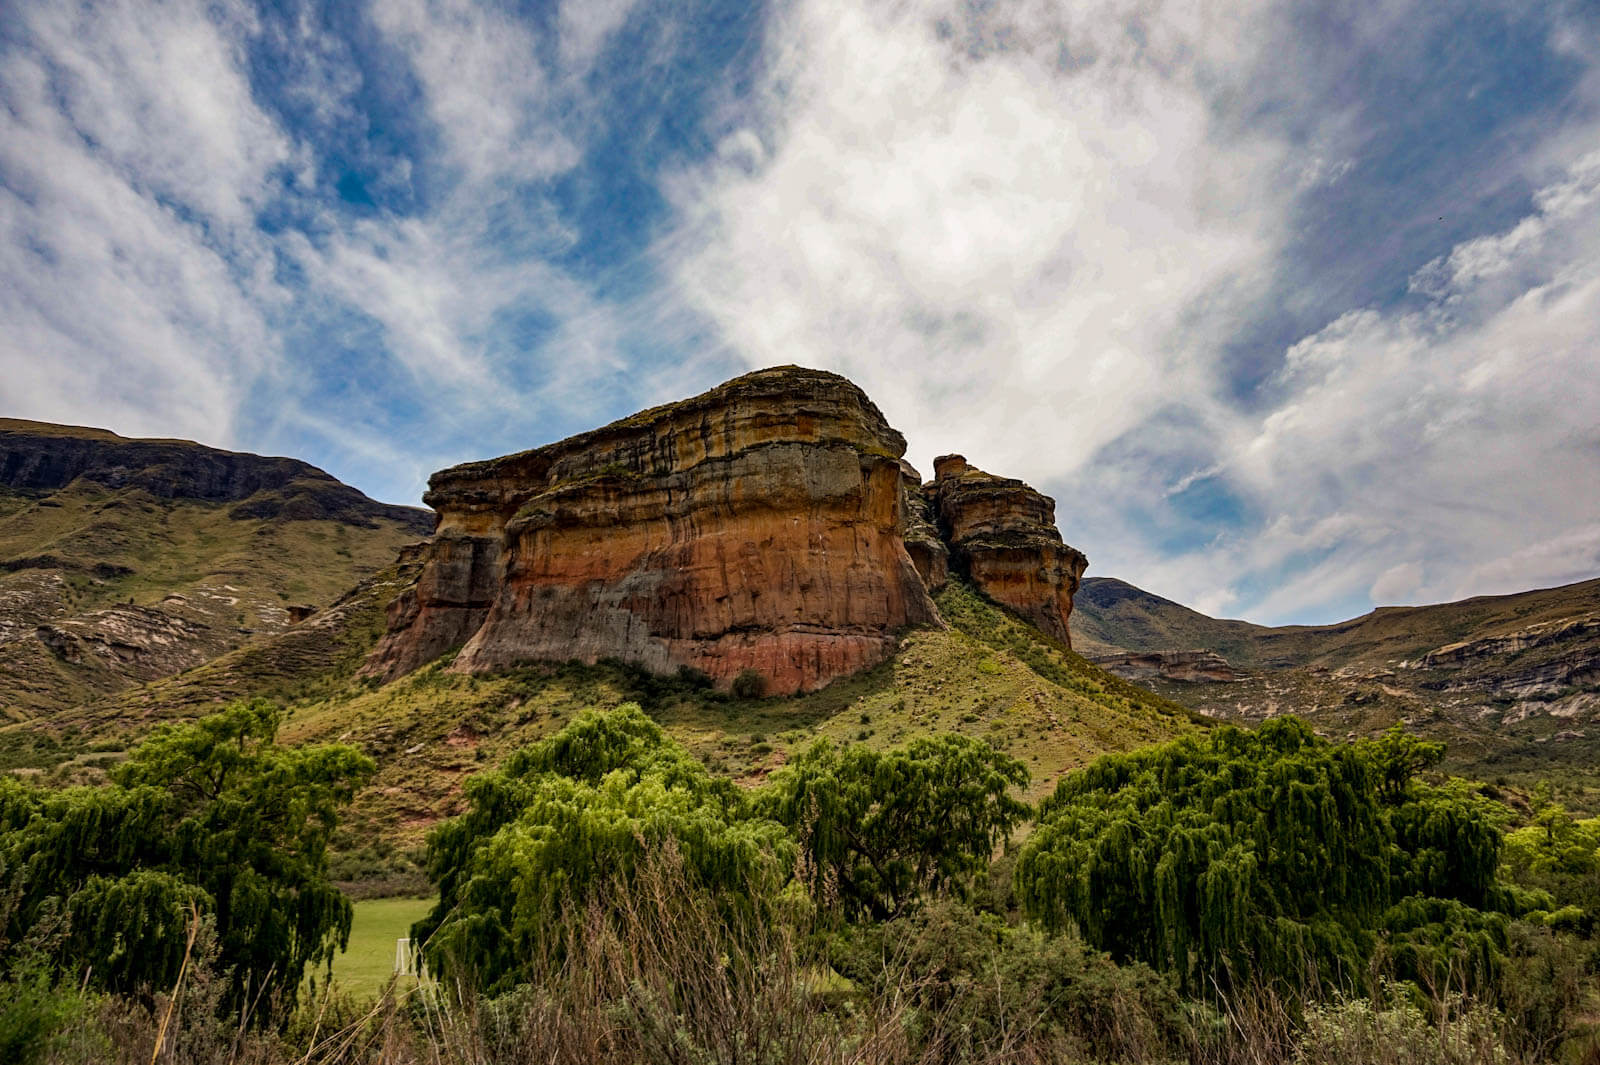 Wanderspaß im Golden Gate Highlands National Park